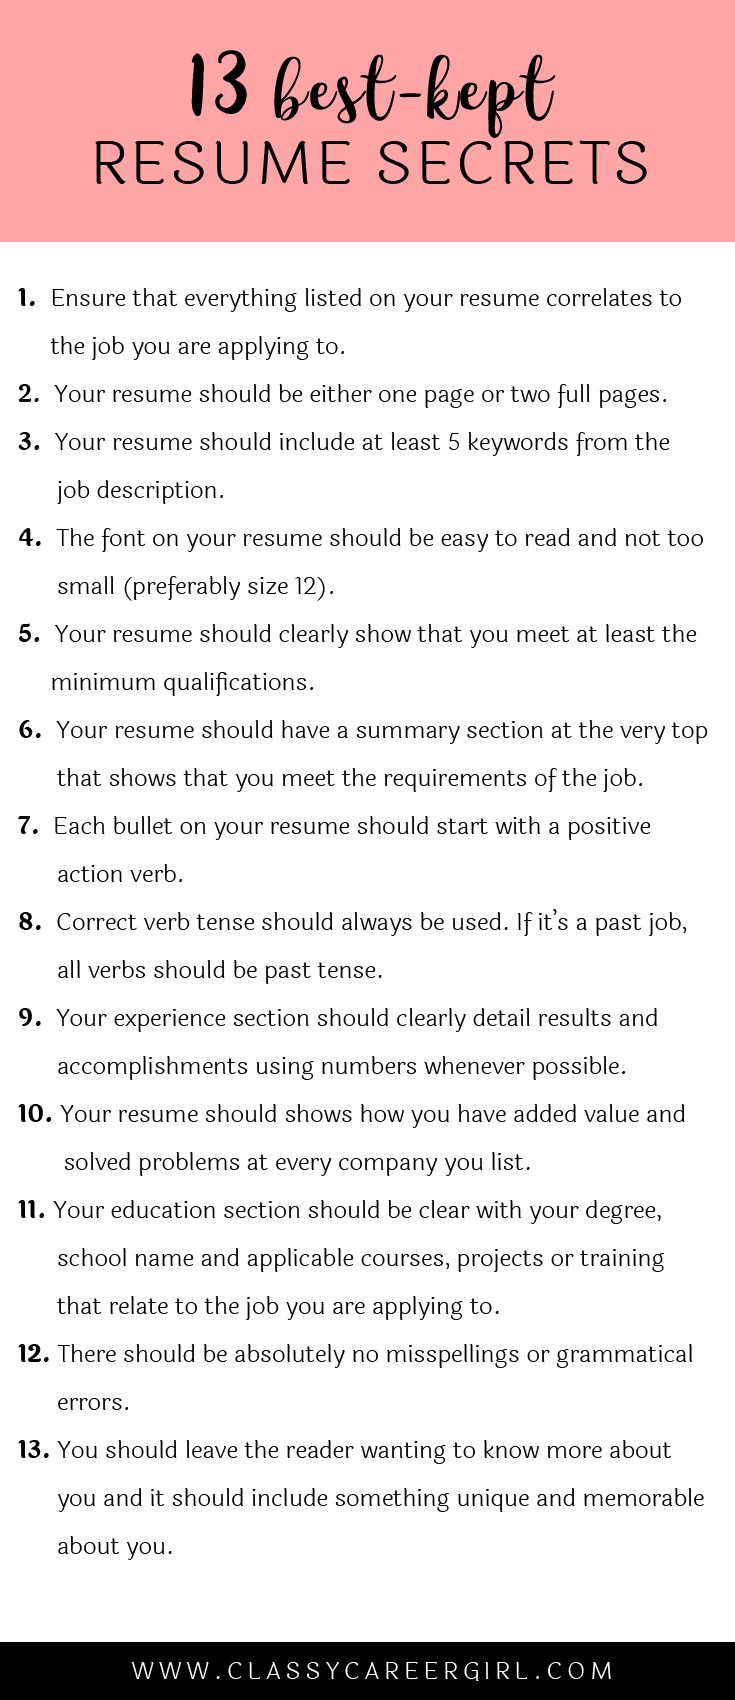 Opposenewapstandardsus  Sweet  Ideas About Resume On Pinterest  Cv Format Resume Cv And  With Fair Some Hiring Managers Will Toss Your Resume Out If You Dont Know These  With Adorable Indesign Resume Templates Also Great Resumes Fast In Addition How To Build Your Resume And Salesman Resume As Well As Soccer Coach Resume Additionally Work Skills For Resume From Pinterestcom With Opposenewapstandardsus  Fair  Ideas About Resume On Pinterest  Cv Format Resume Cv And  With Adorable Some Hiring Managers Will Toss Your Resume Out If You Dont Know These  And Sweet Indesign Resume Templates Also Great Resumes Fast In Addition How To Build Your Resume From Pinterestcom